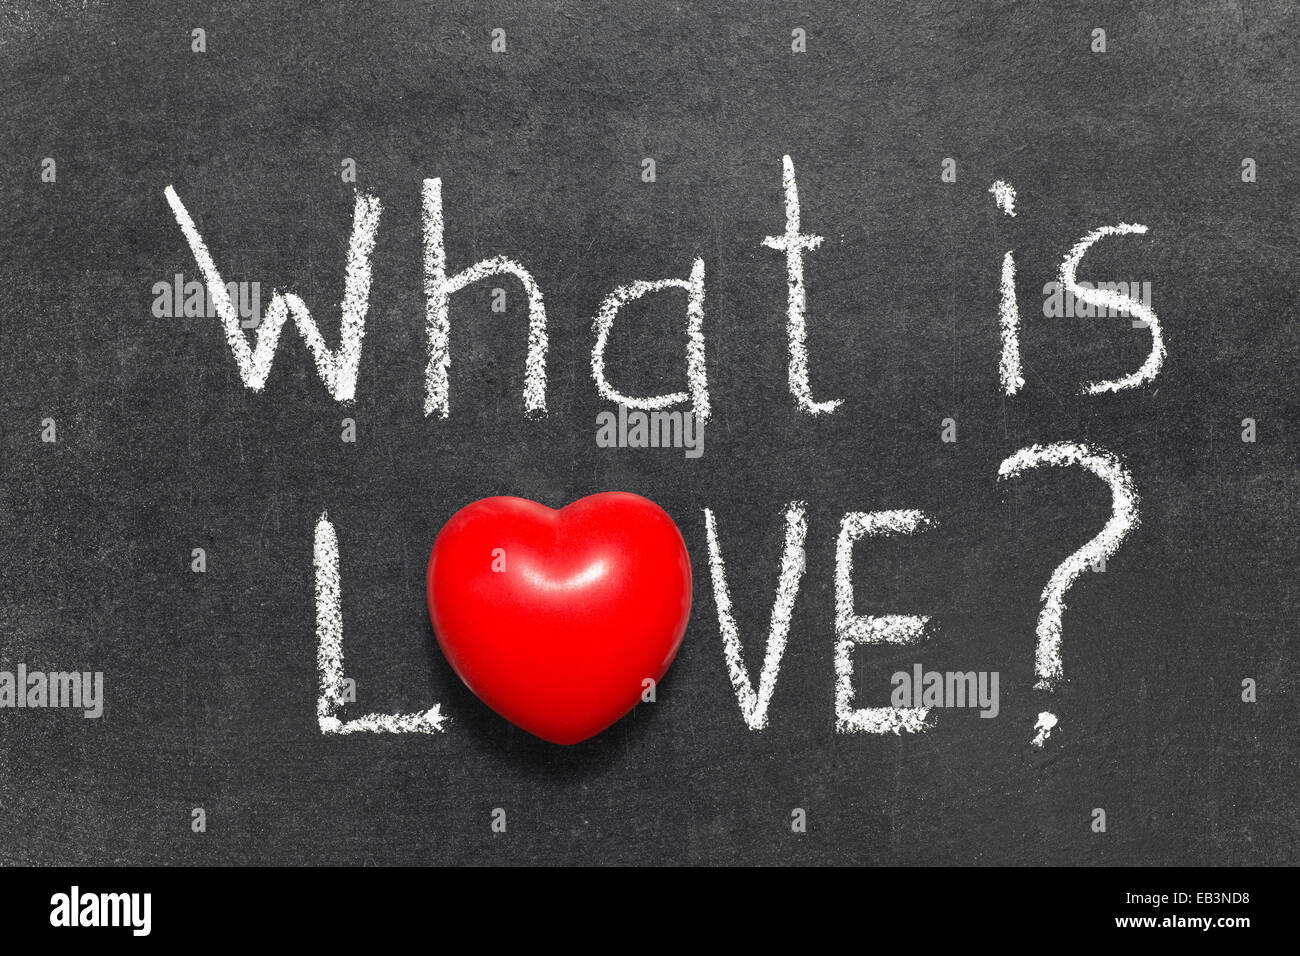 TO THE QUESTION ABOUT LOVE 28